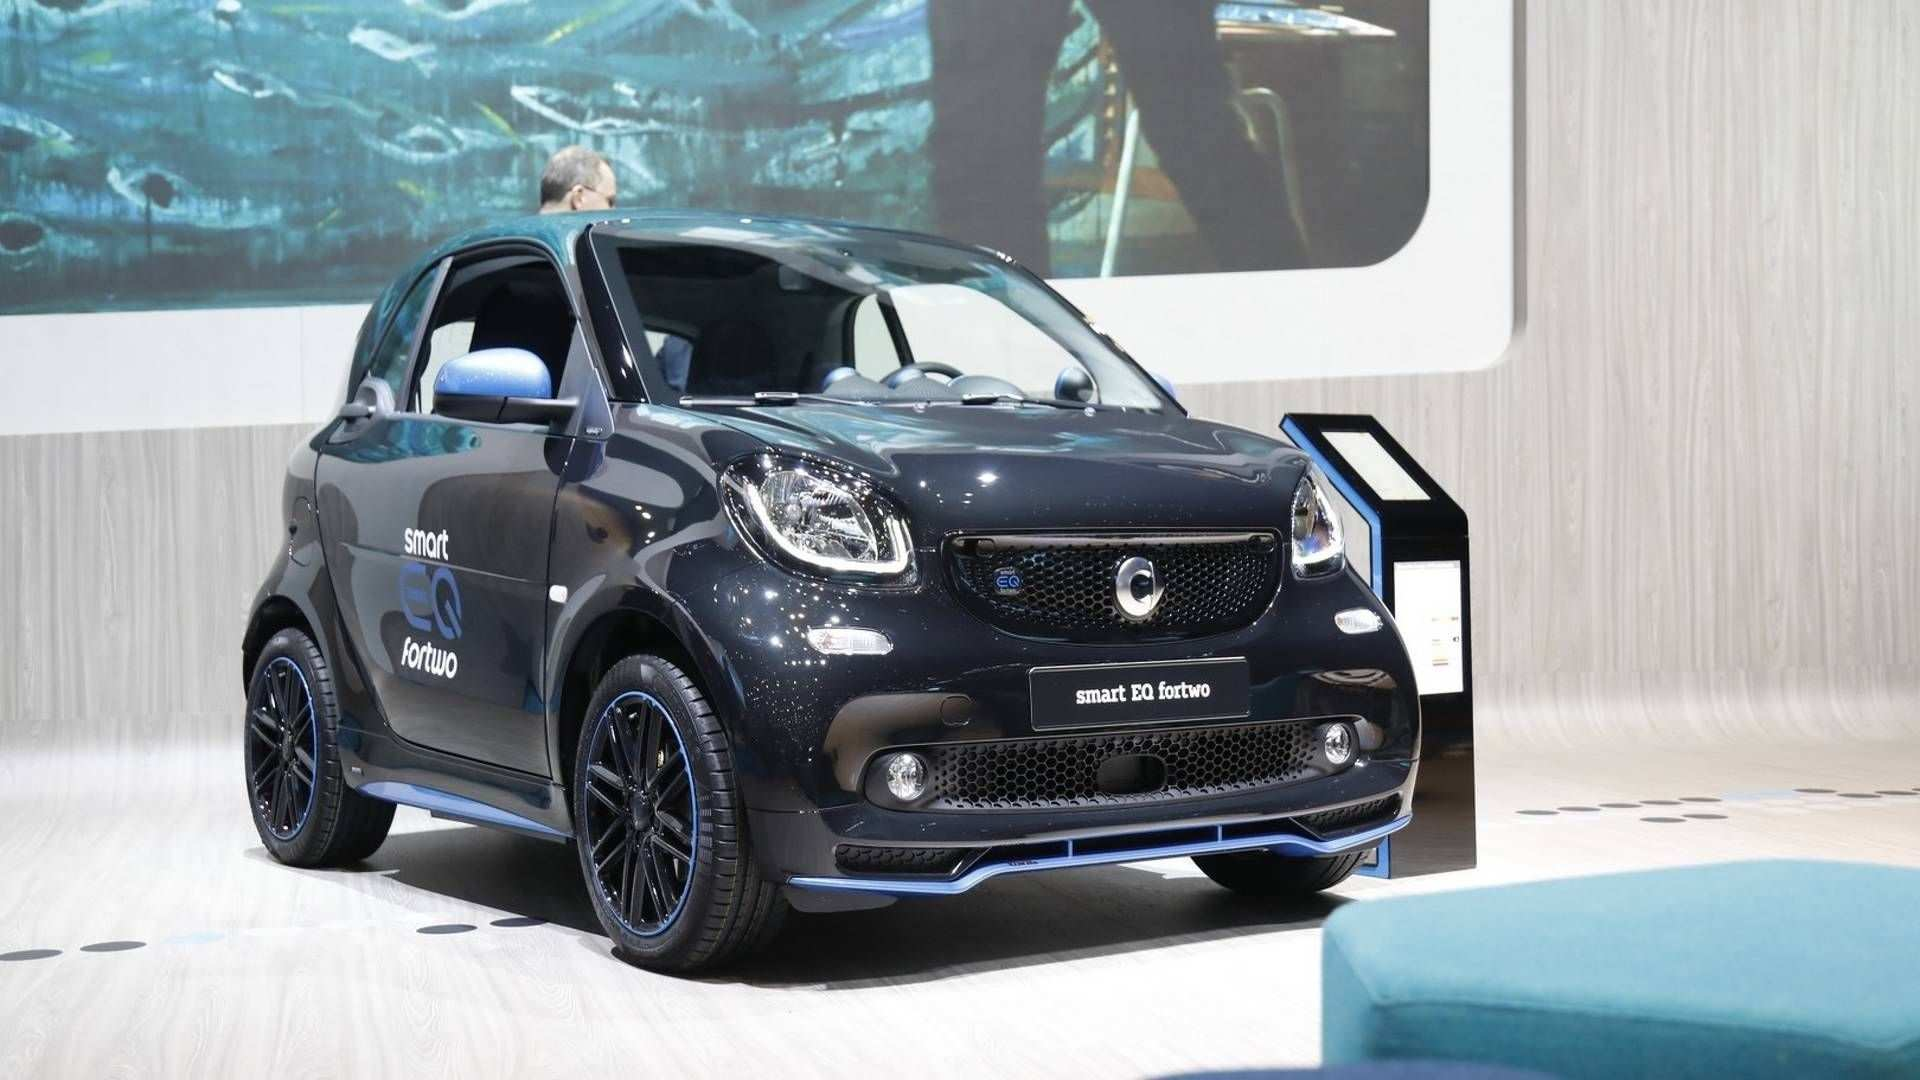 67 A 2020 Smart Fortwo Specs And Review